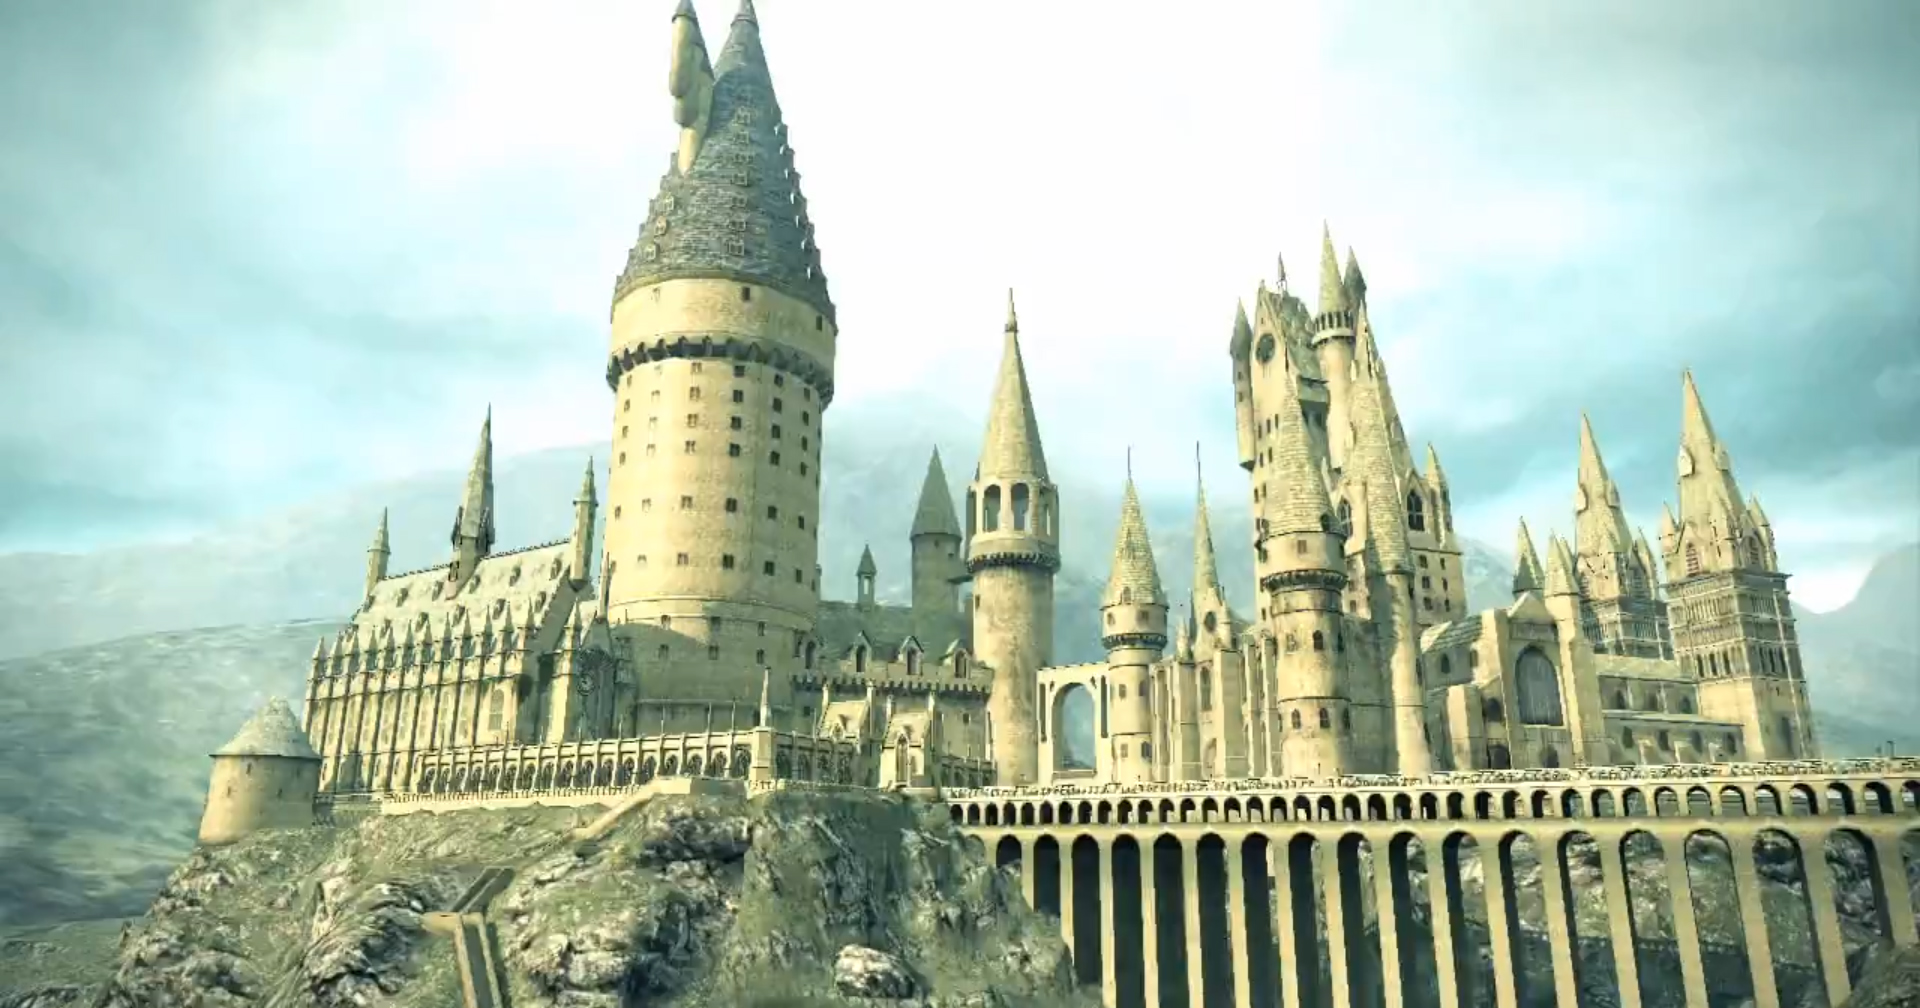 Image from HarryPotterwiki.com